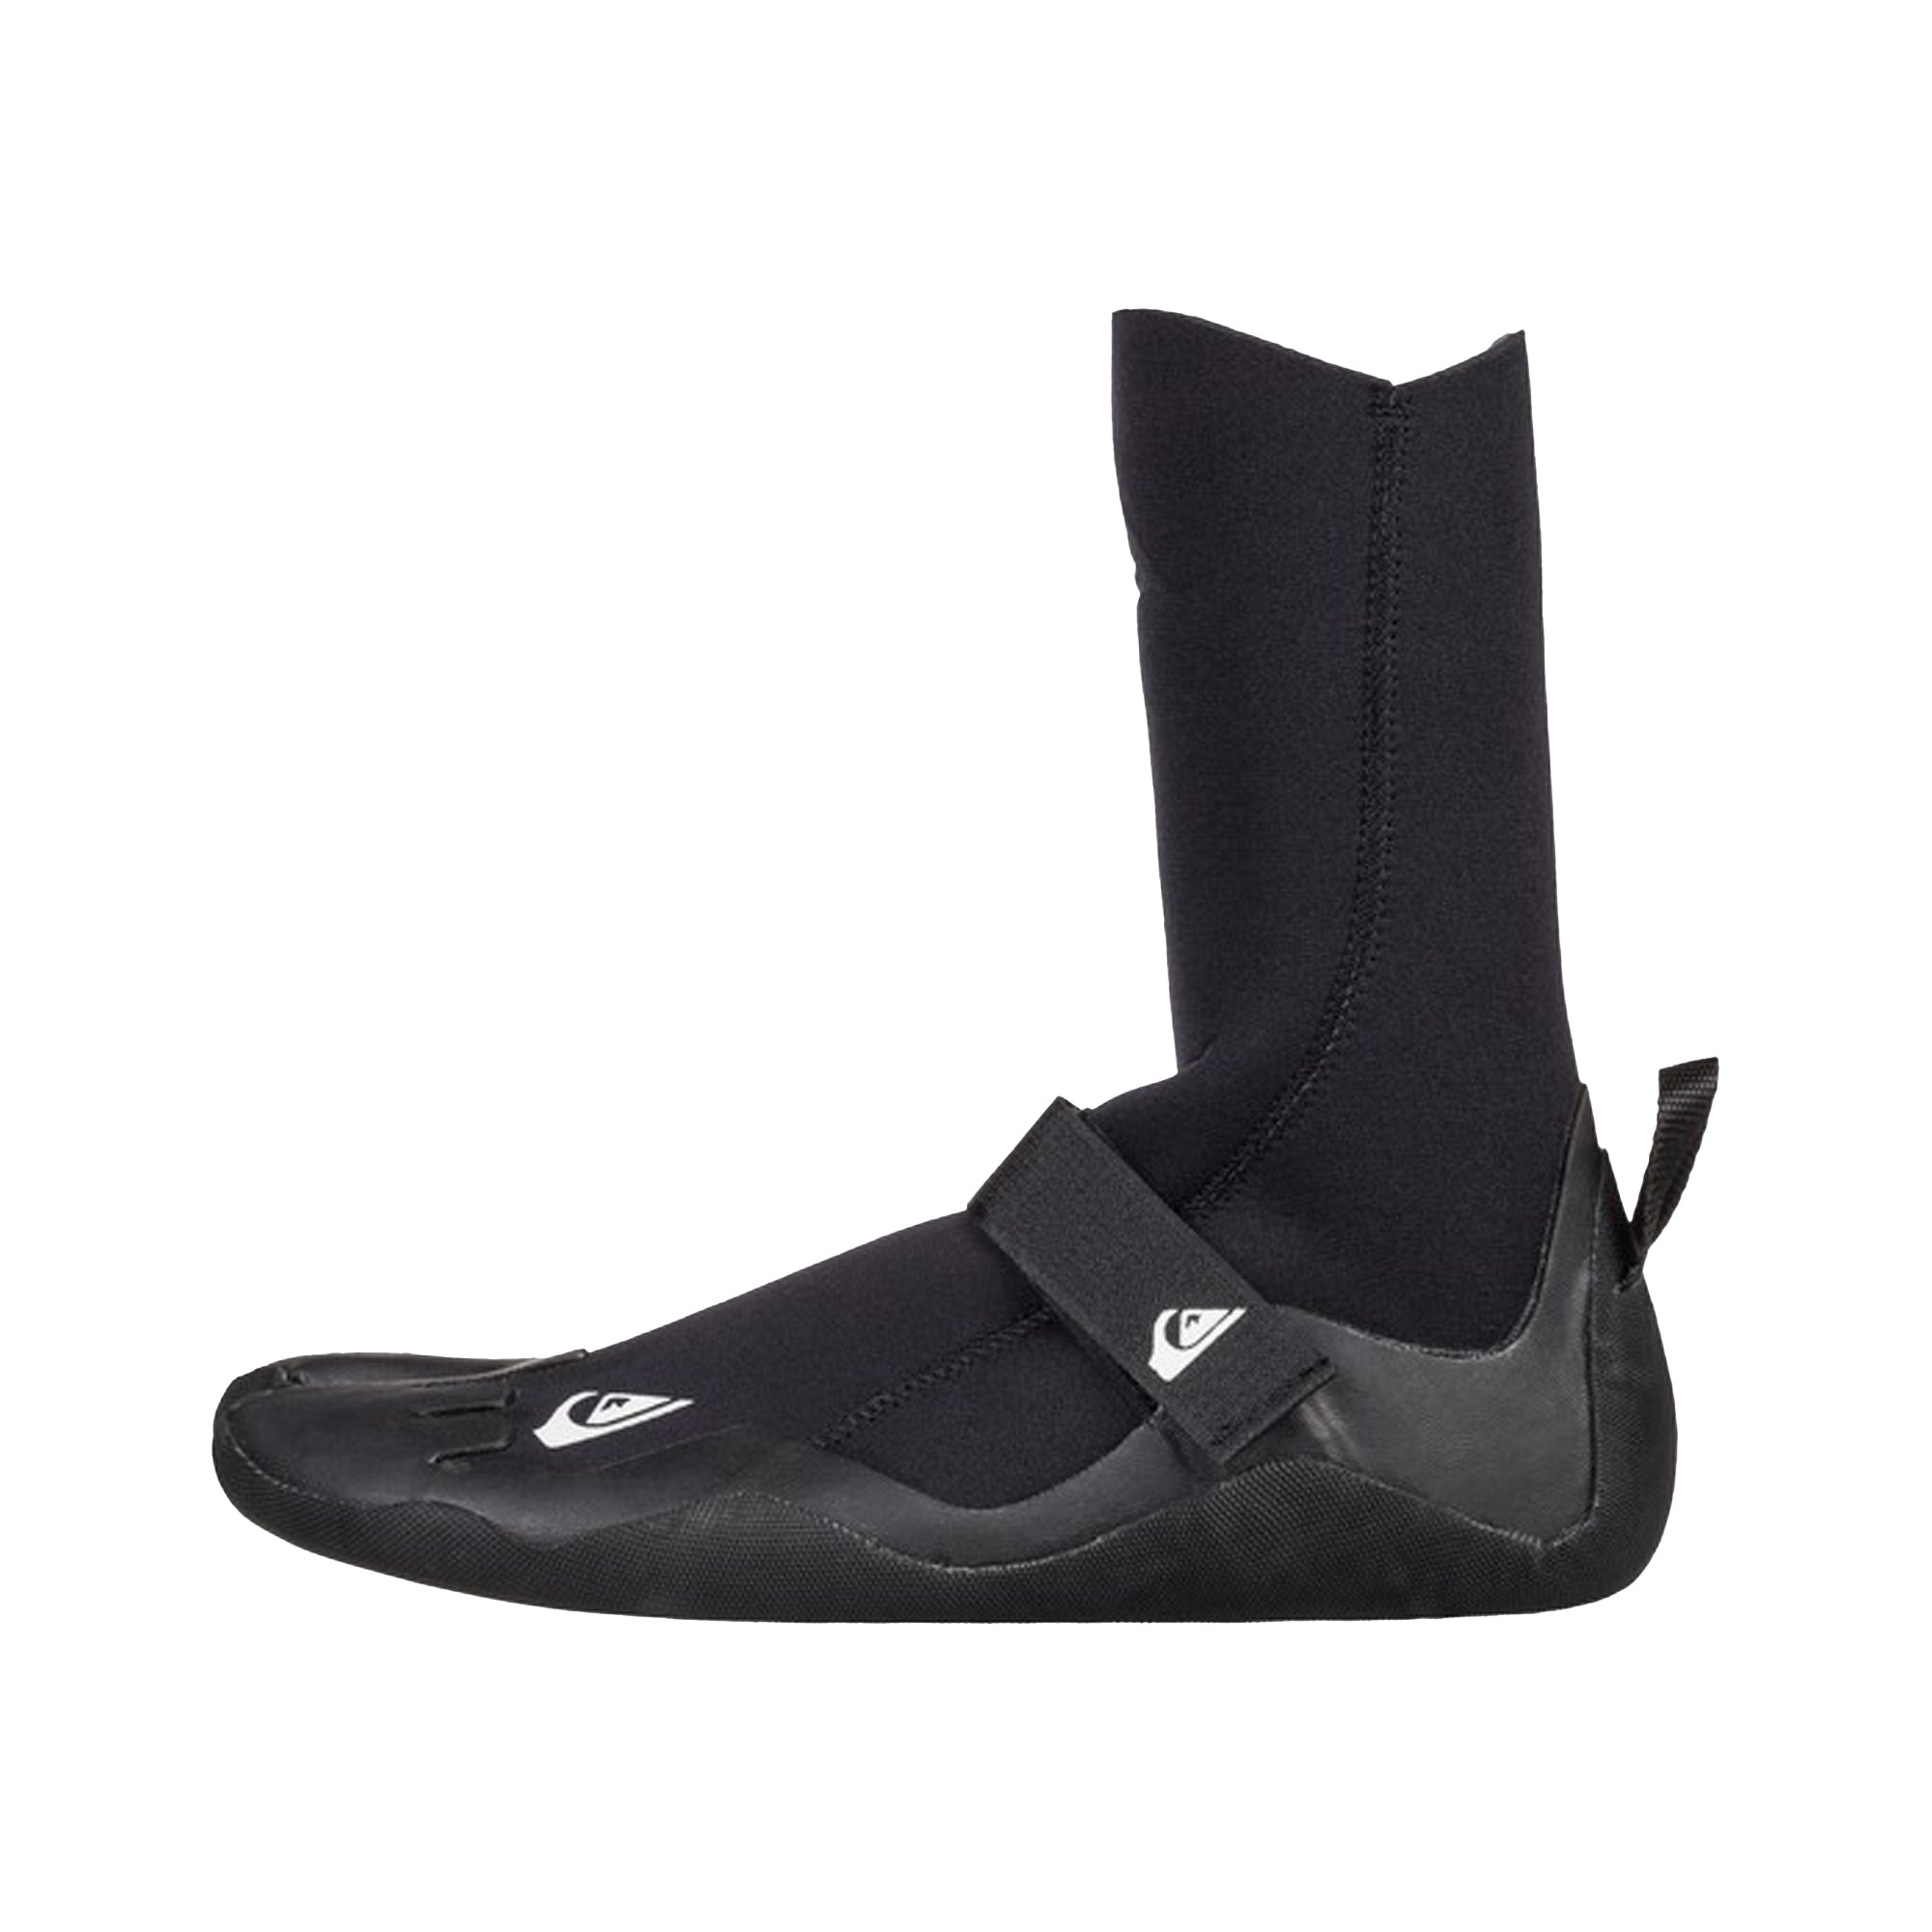 Quiksilver 3mm Syncro Men's Split-Toe Wetsuit Booties